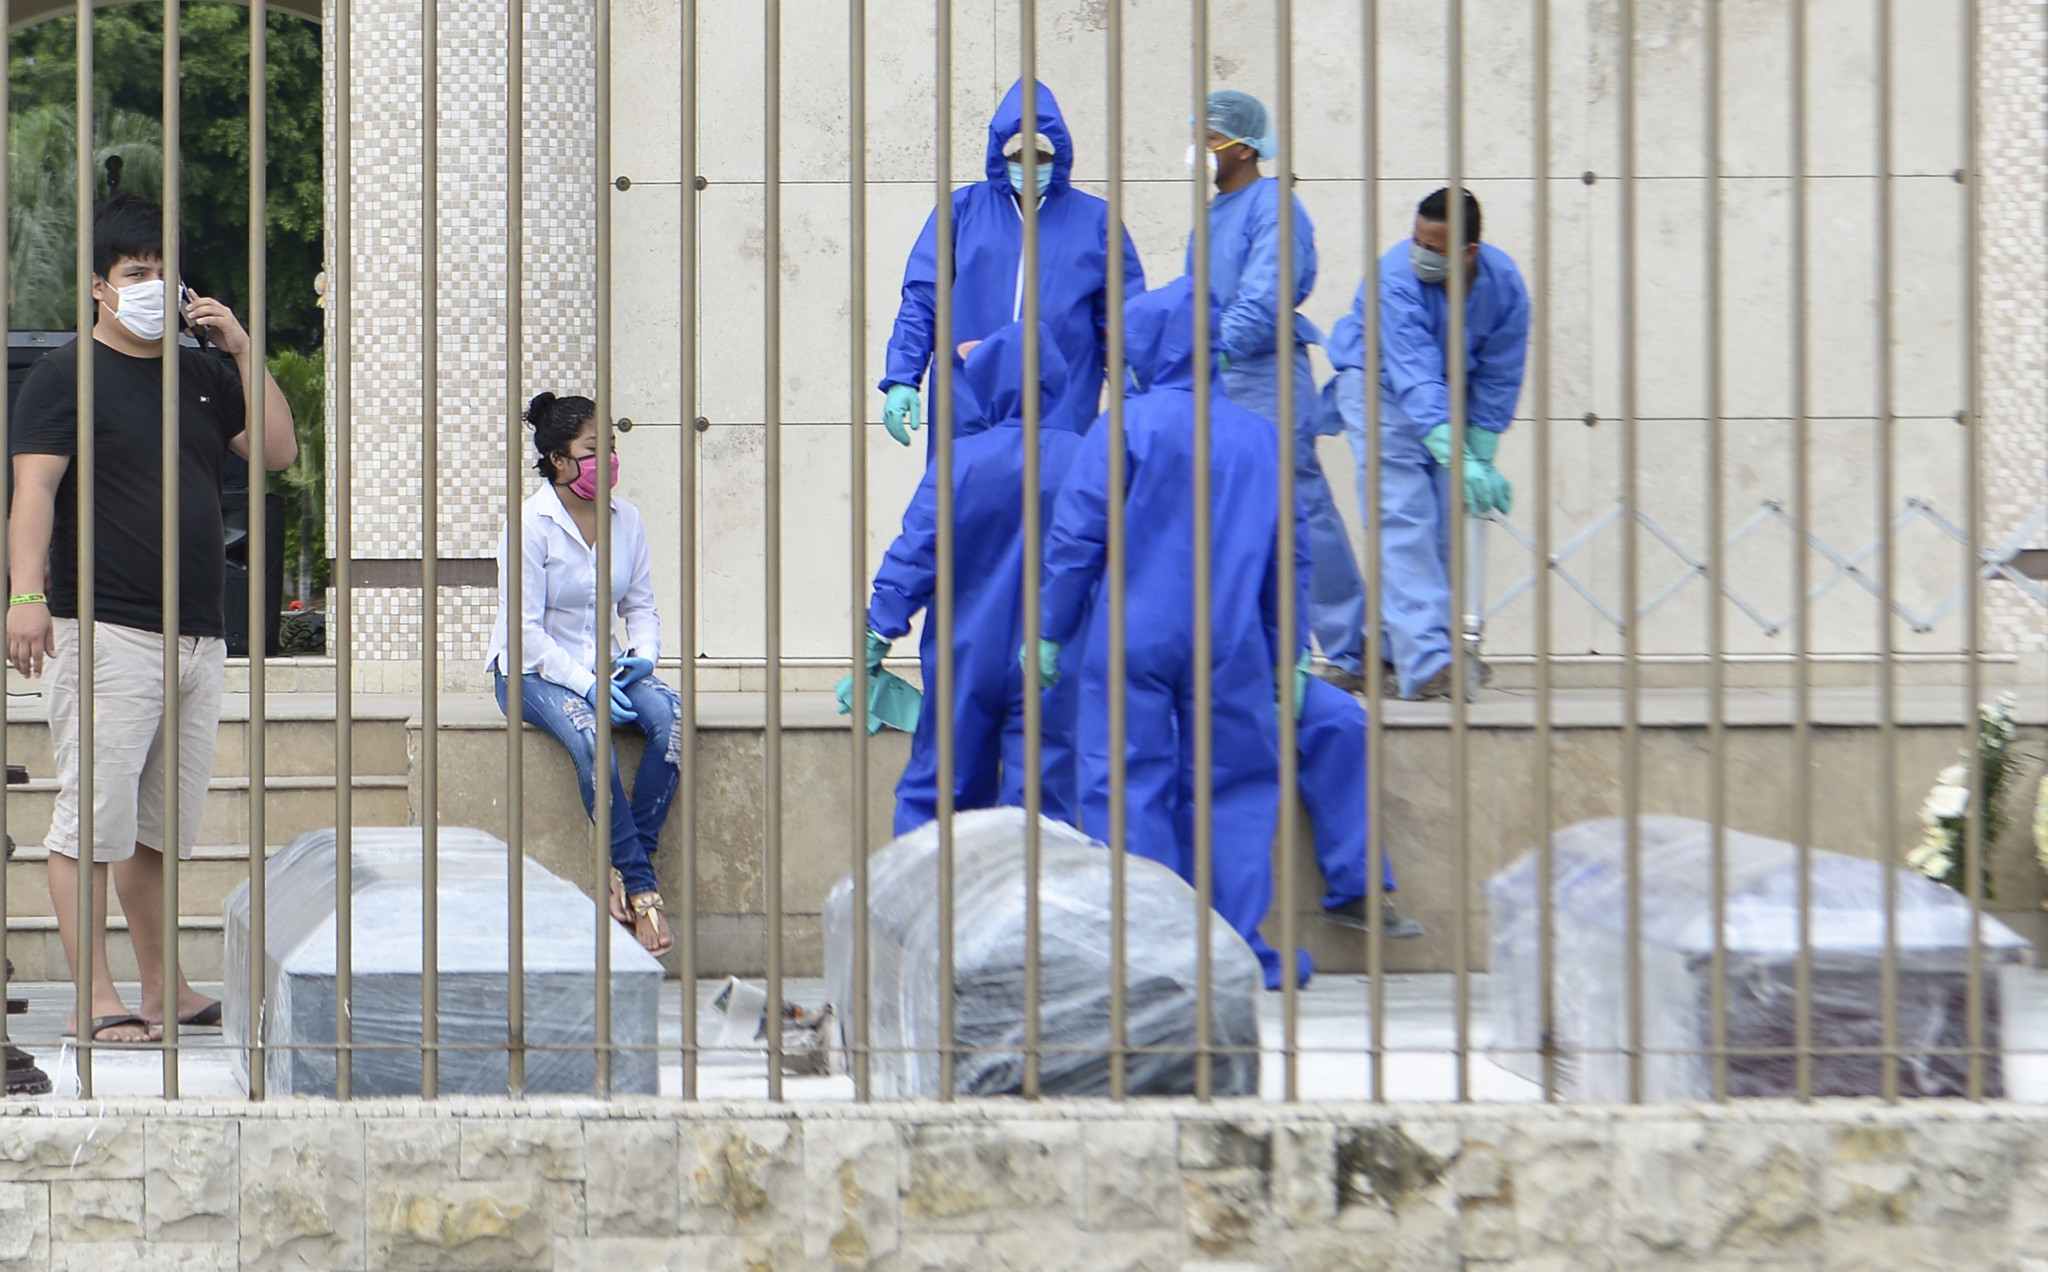 Bodies left in streets of Ecuador's biggest city as coronavirus ravages country